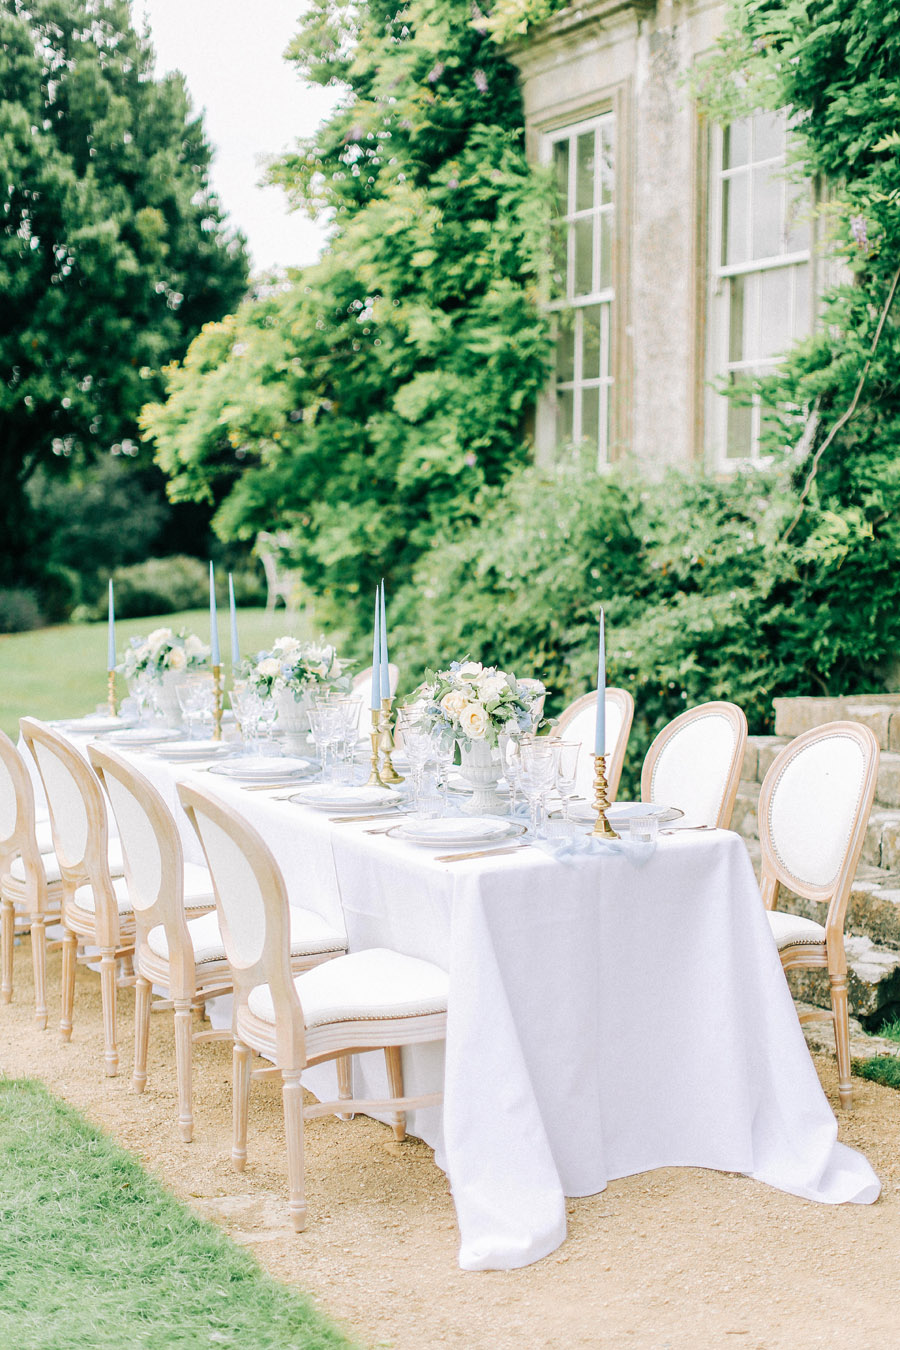 Enchanted Fairytale inspired shoot at Hamswell House, photography credit Charlotte Wise, wedding planner Lucy Ann Reid (1)